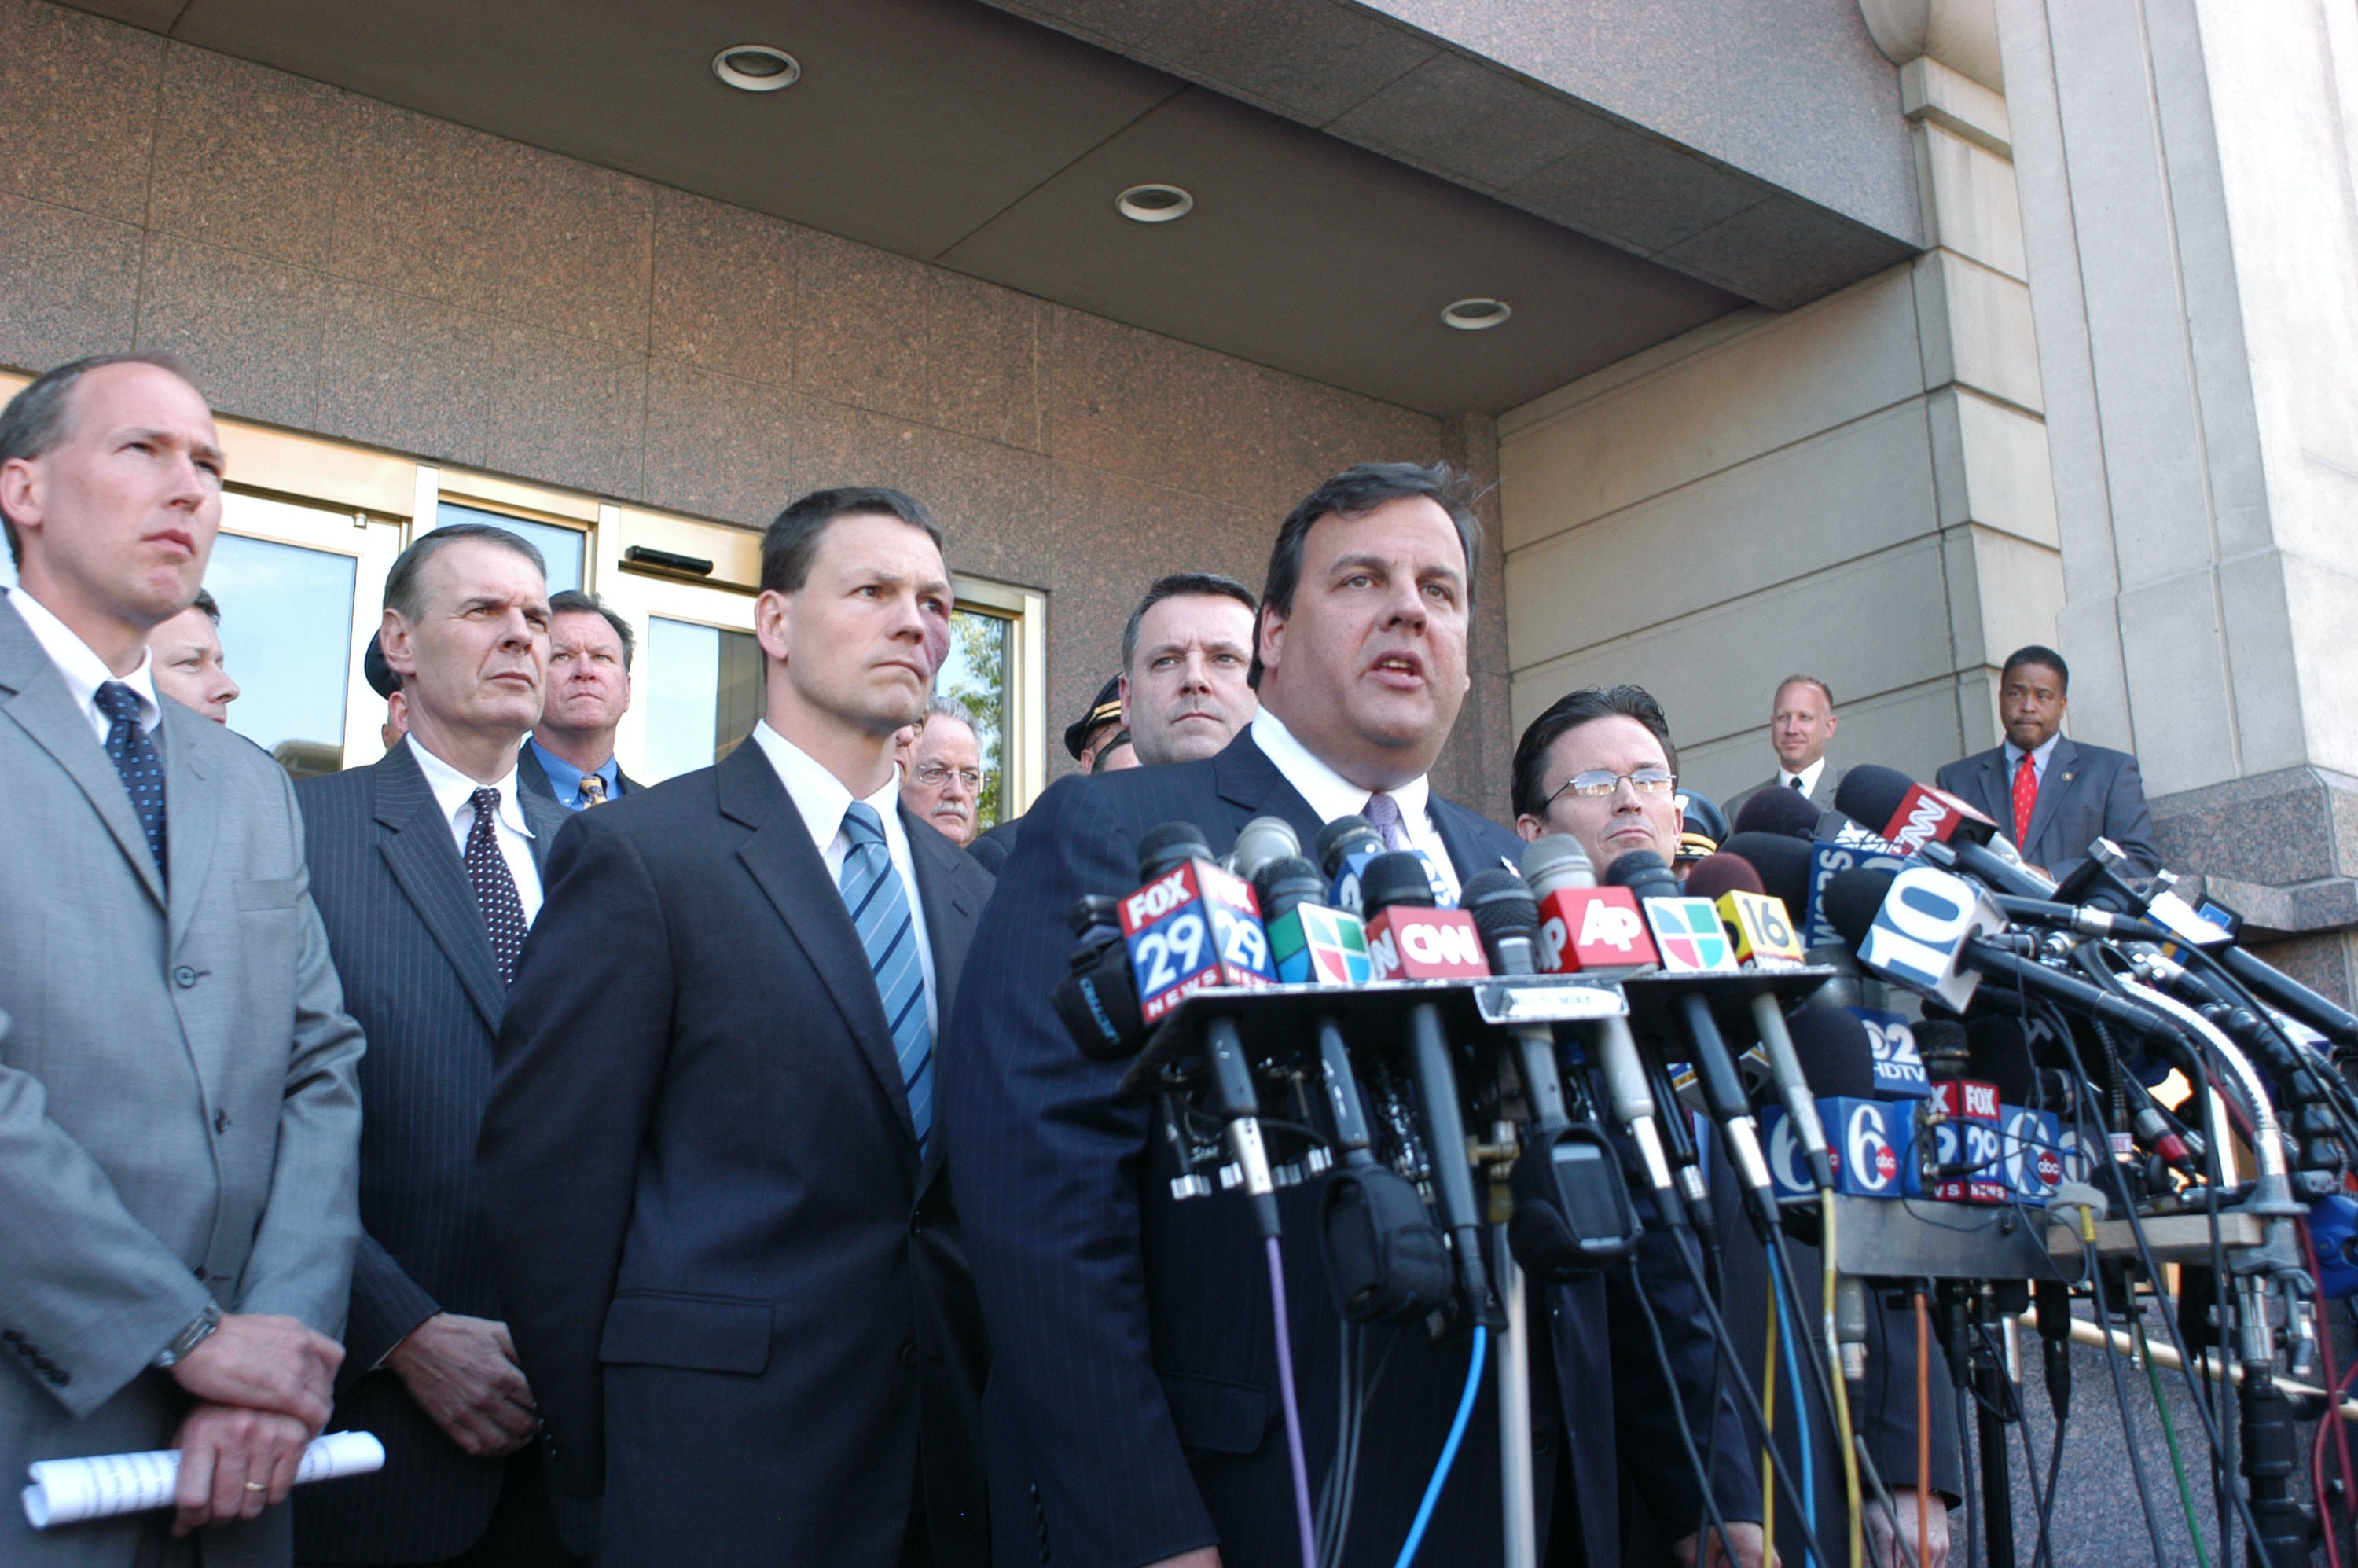 Christie's Conspiracy: Terror Plot of the Fort Dix Five